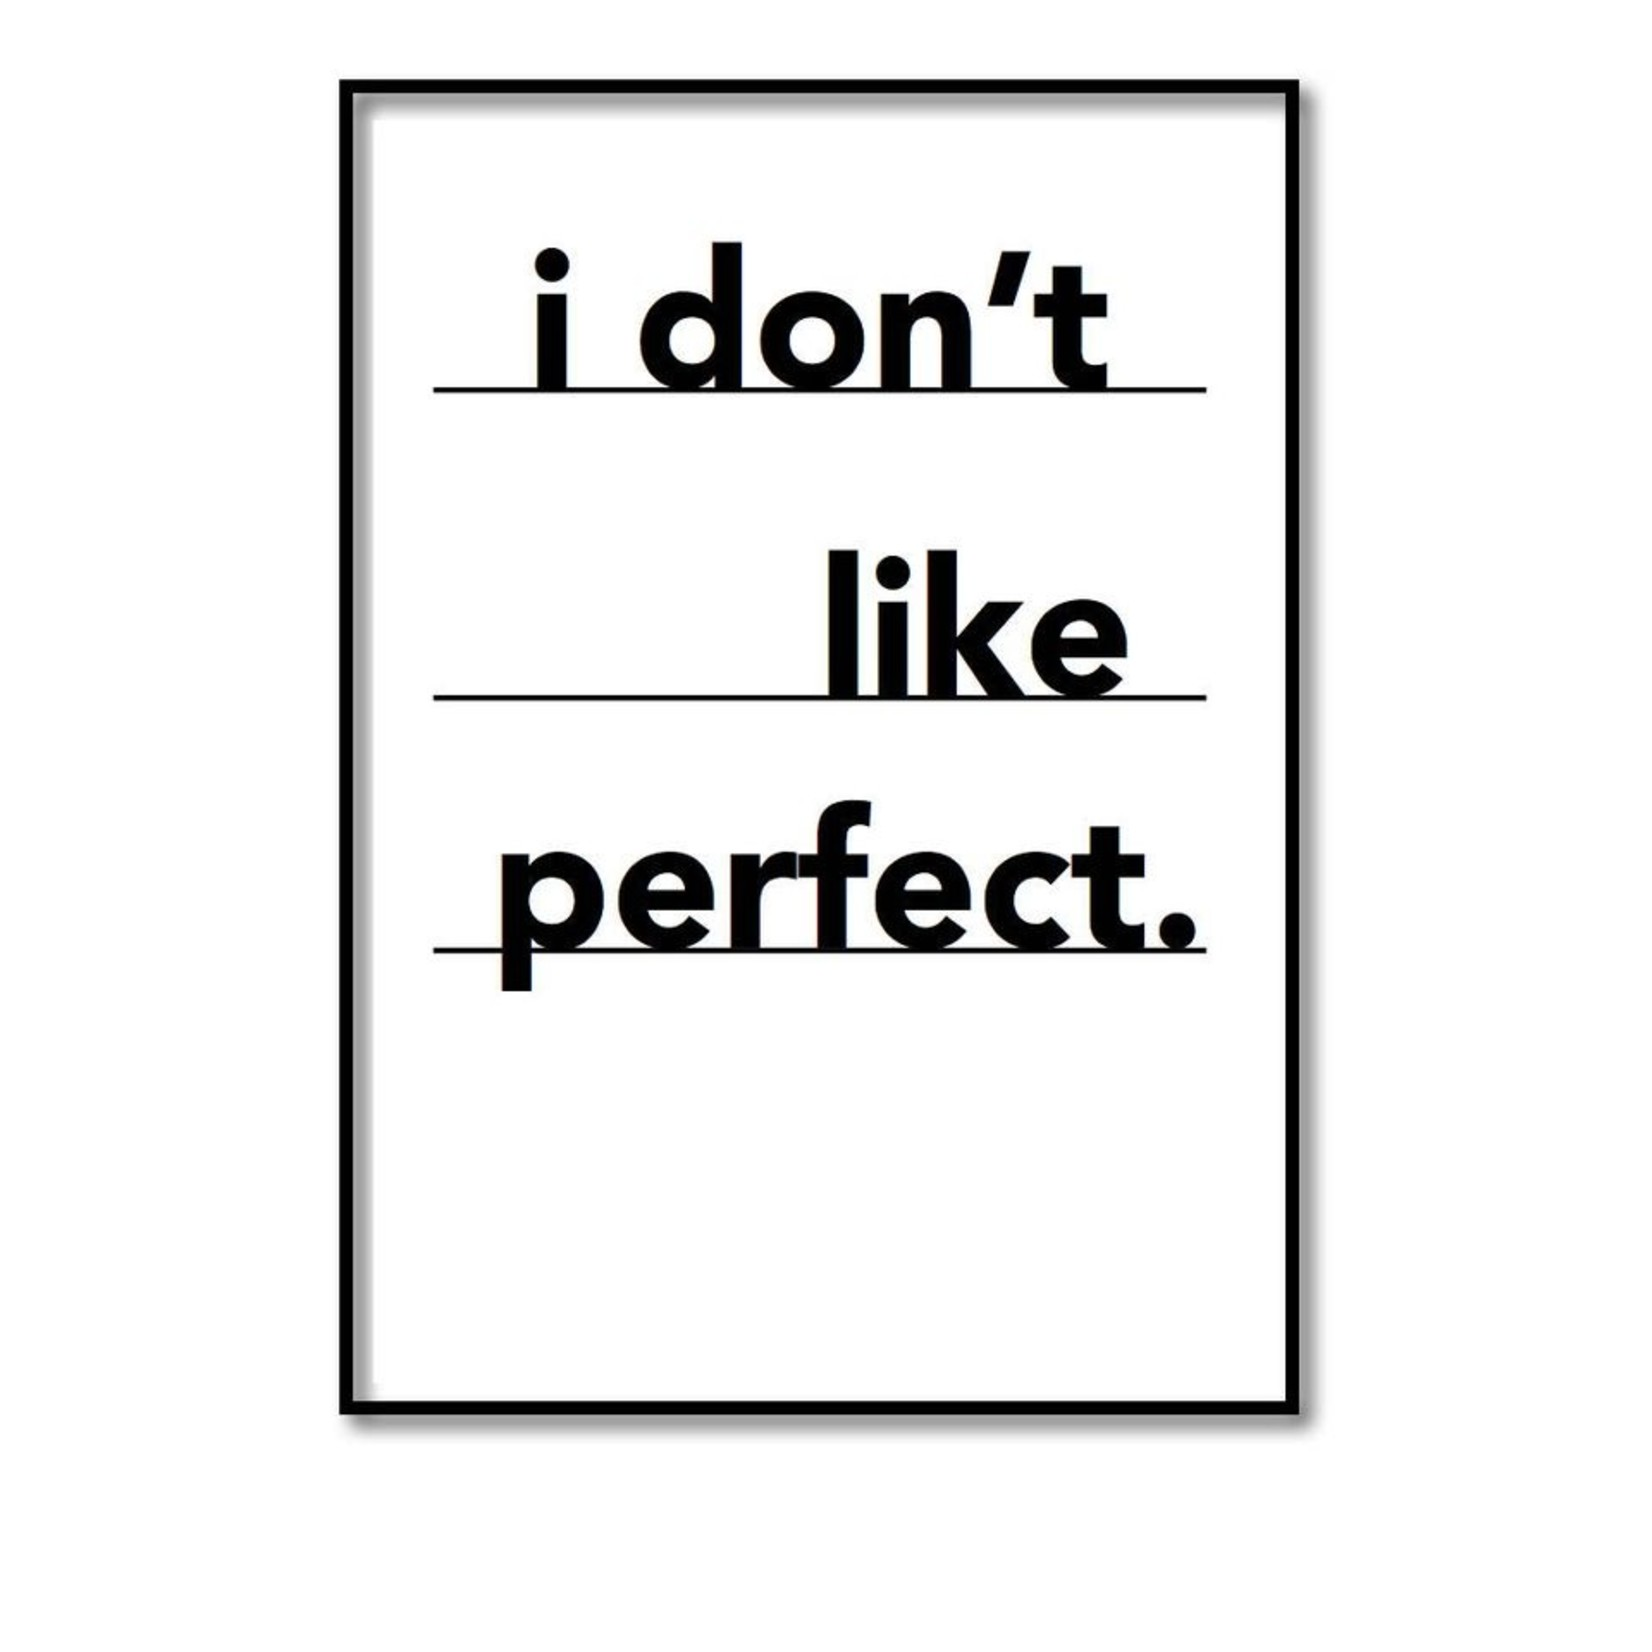 Pixelposter - I don't like perfect (A5)